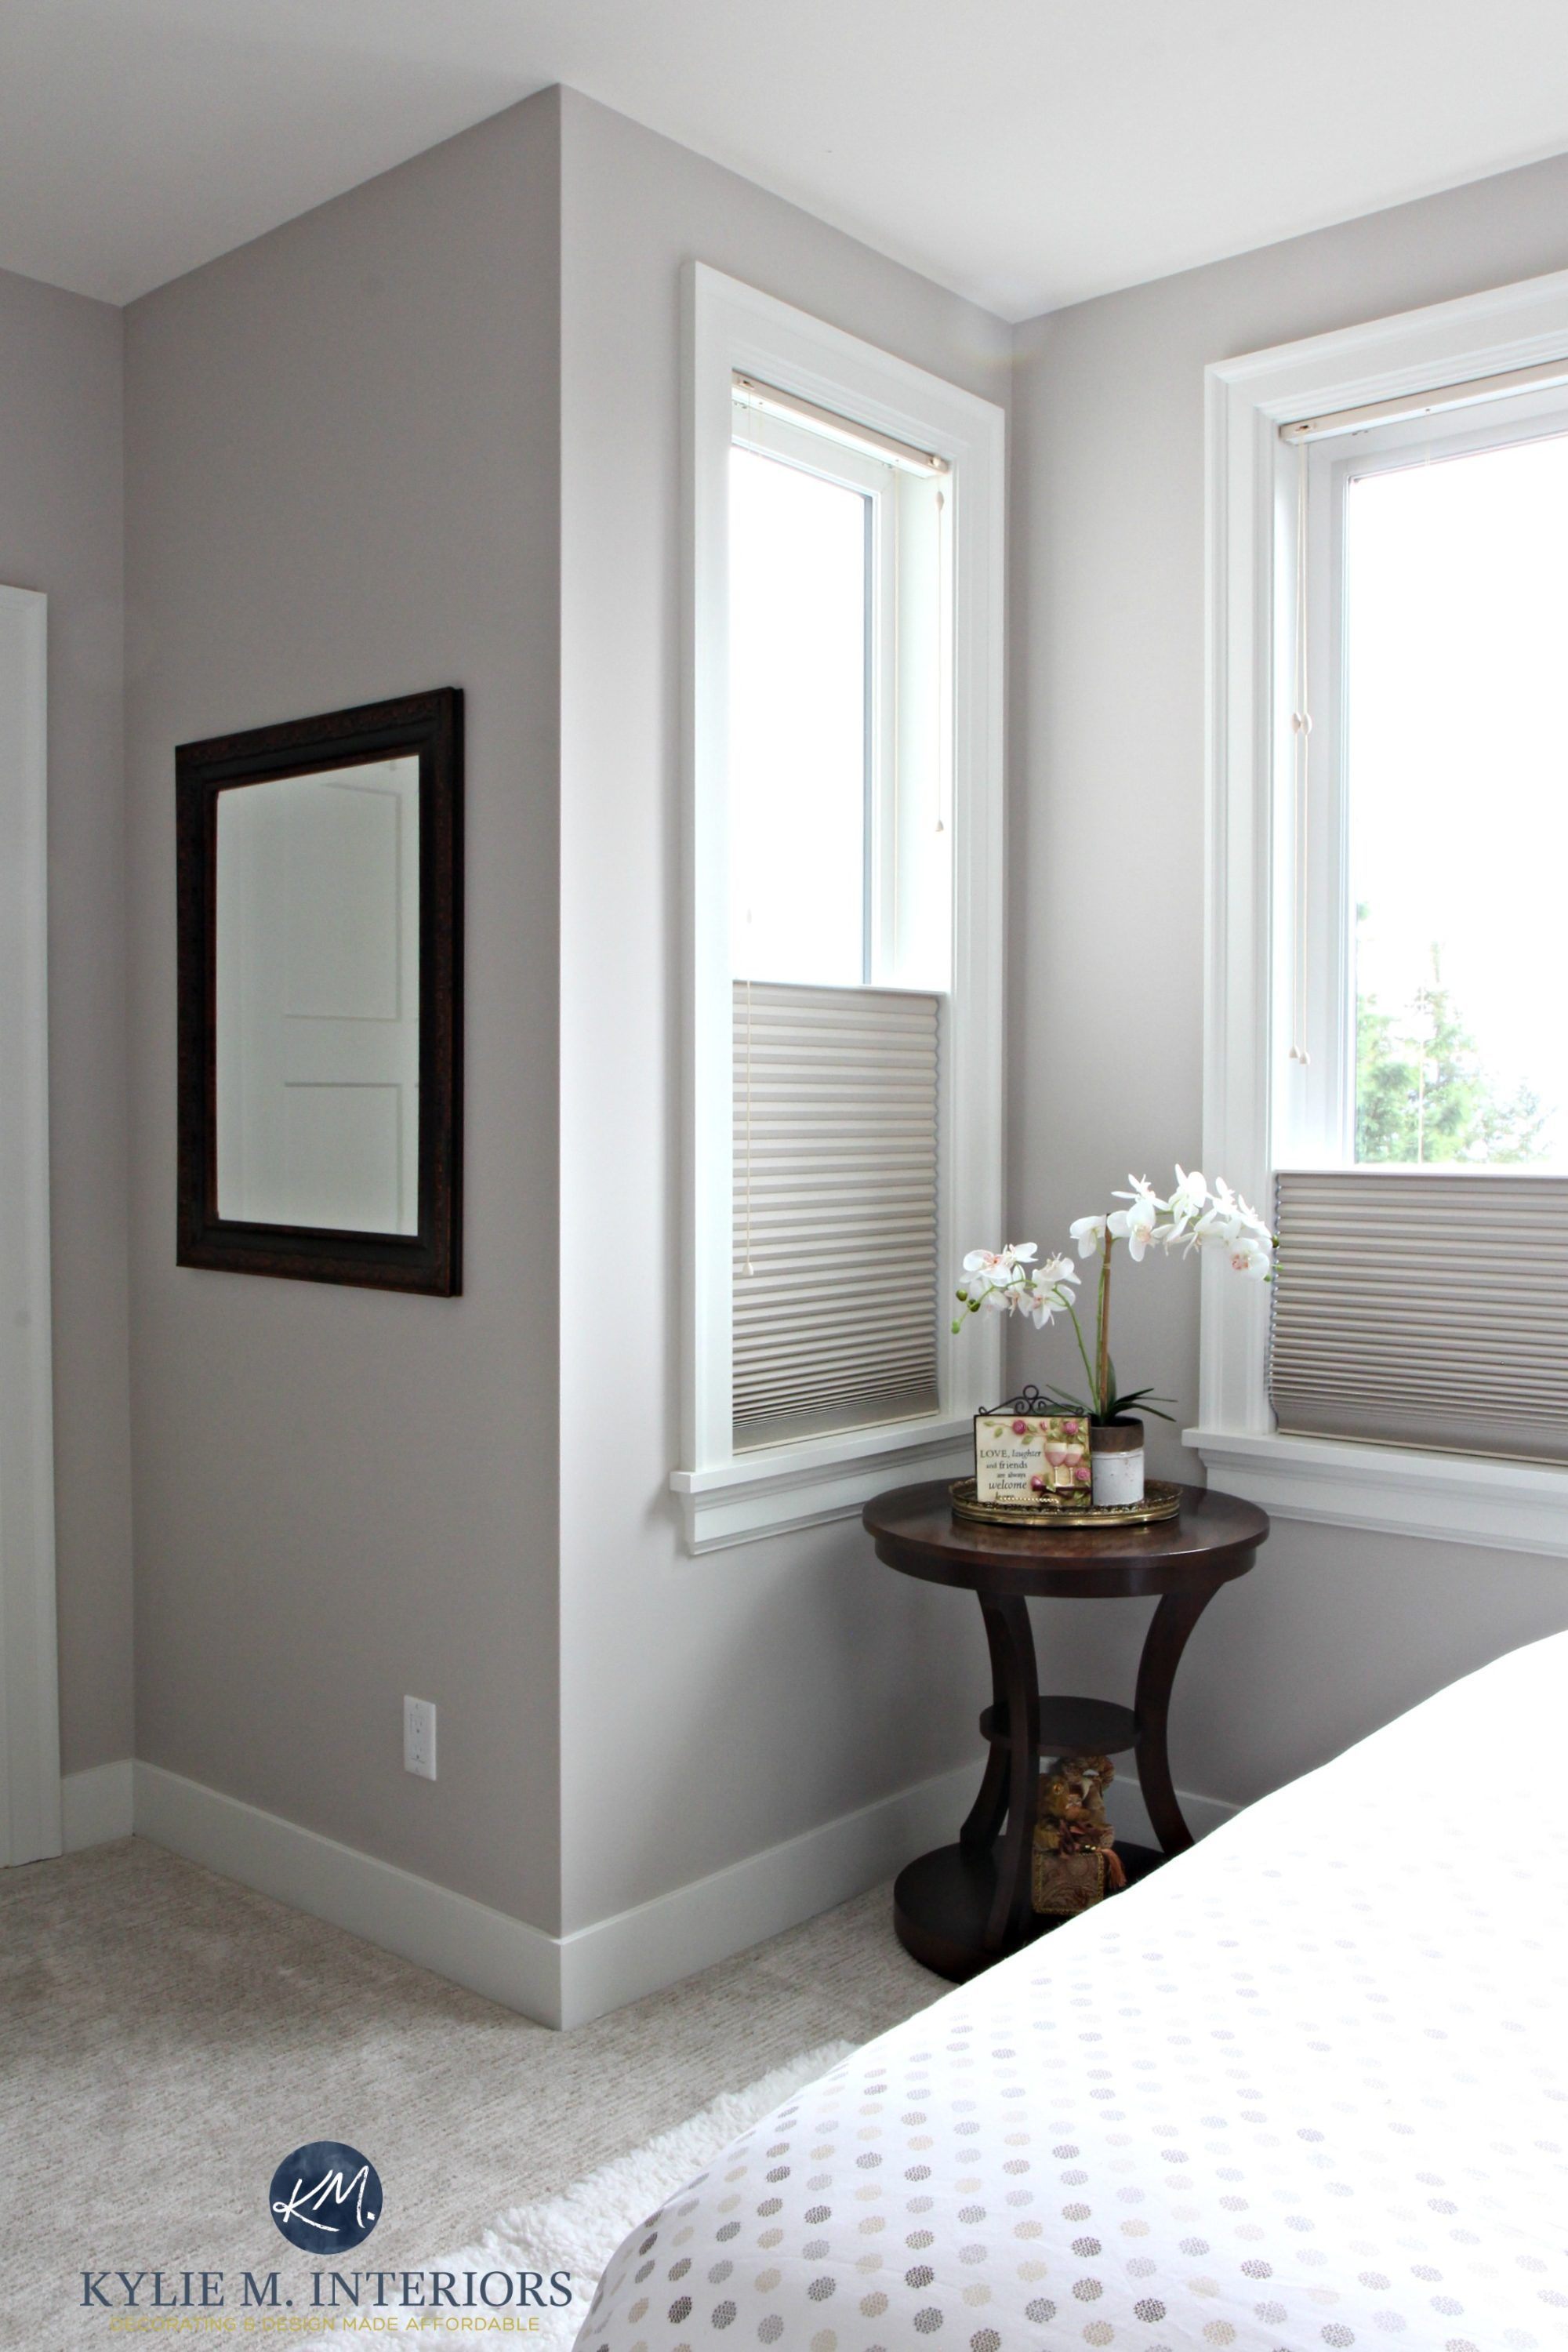 Best Can I Paint My North Facing Room Gray In 2020 Greige 400 x 300